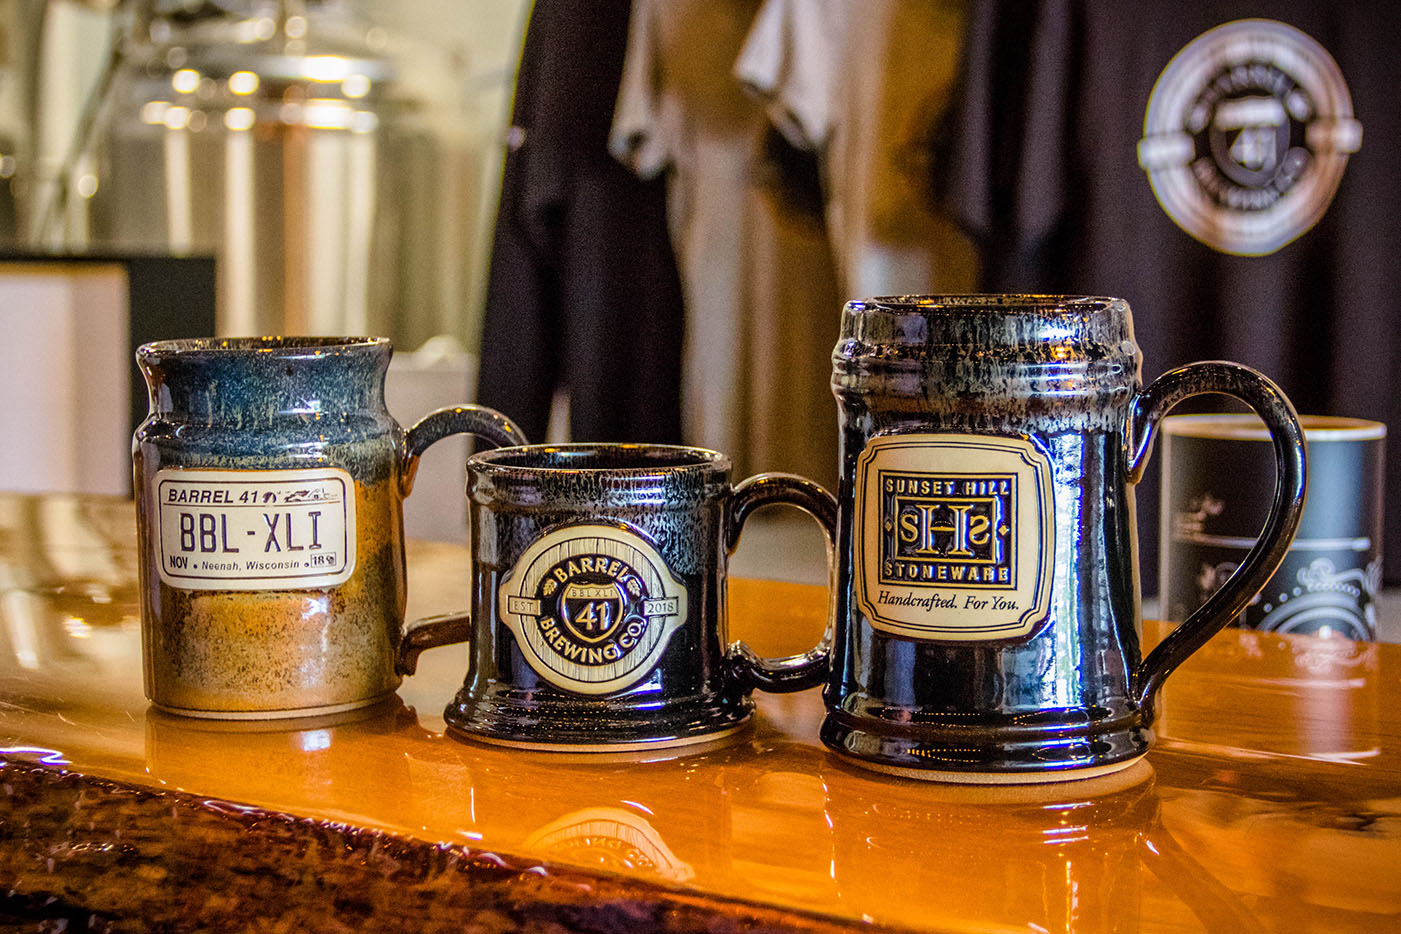 Stoneware Steins and Beer Mugs